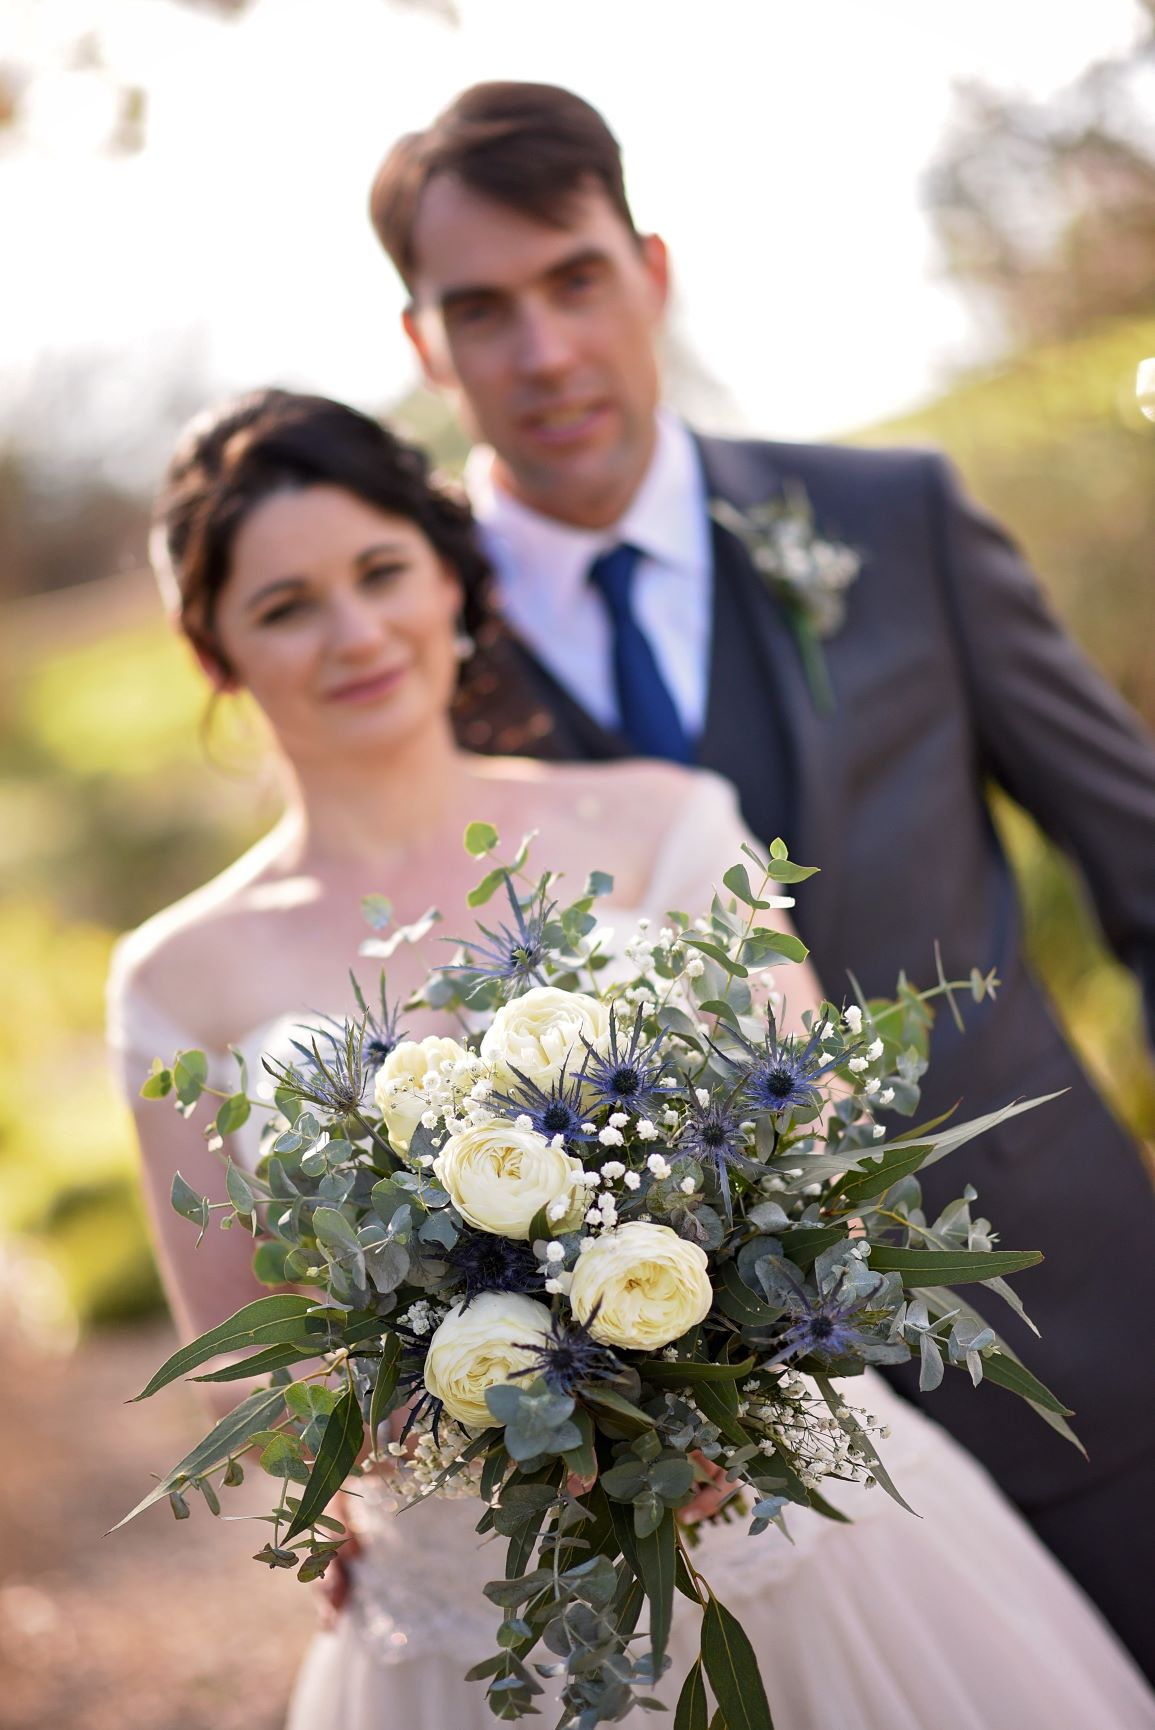 Loose Blugum style bouquet with garden roses and sea holly